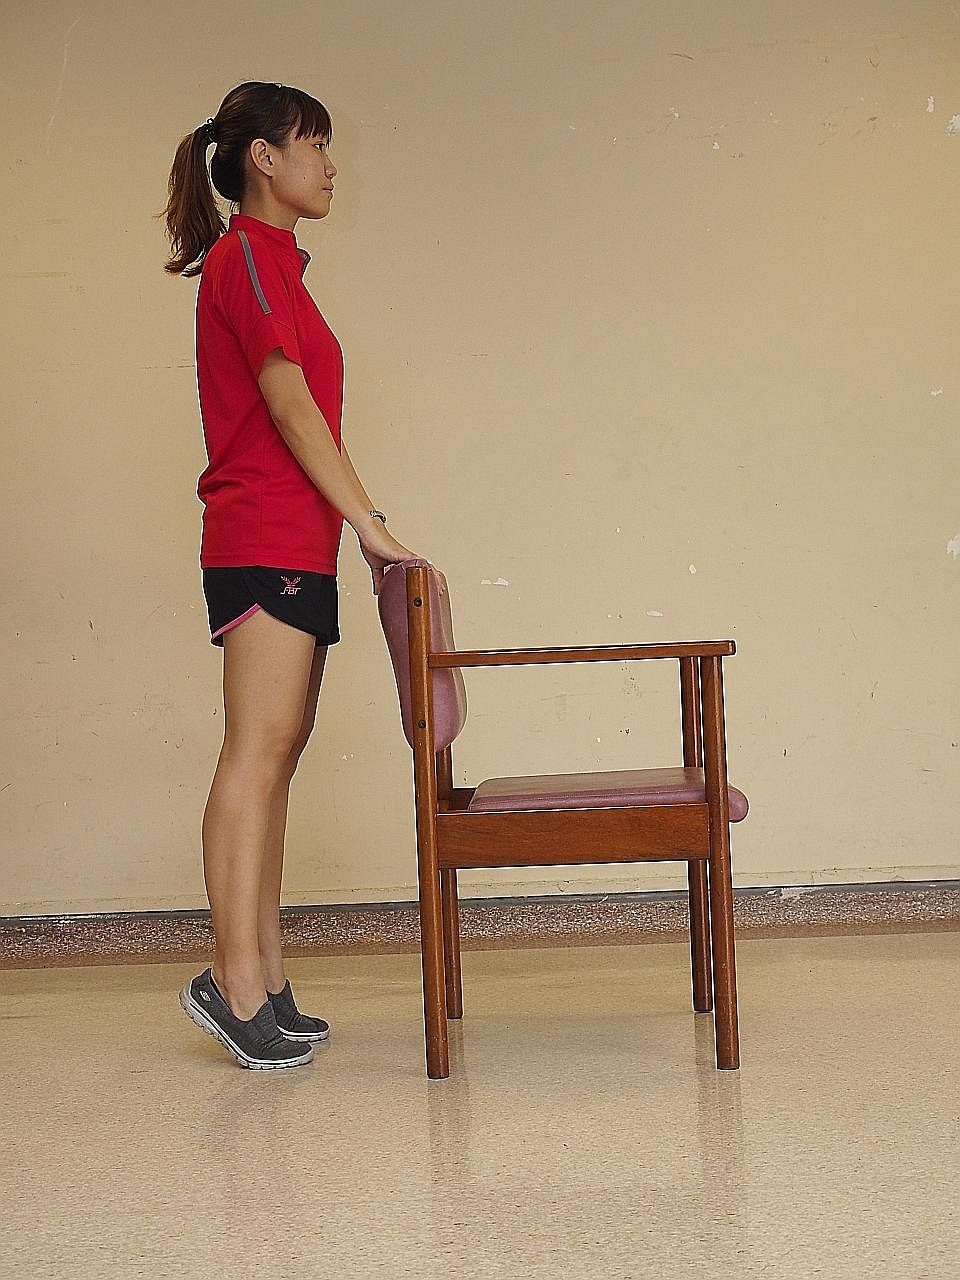 To strengthen the buttock and thigh muscles to help in getting up from a seated position.